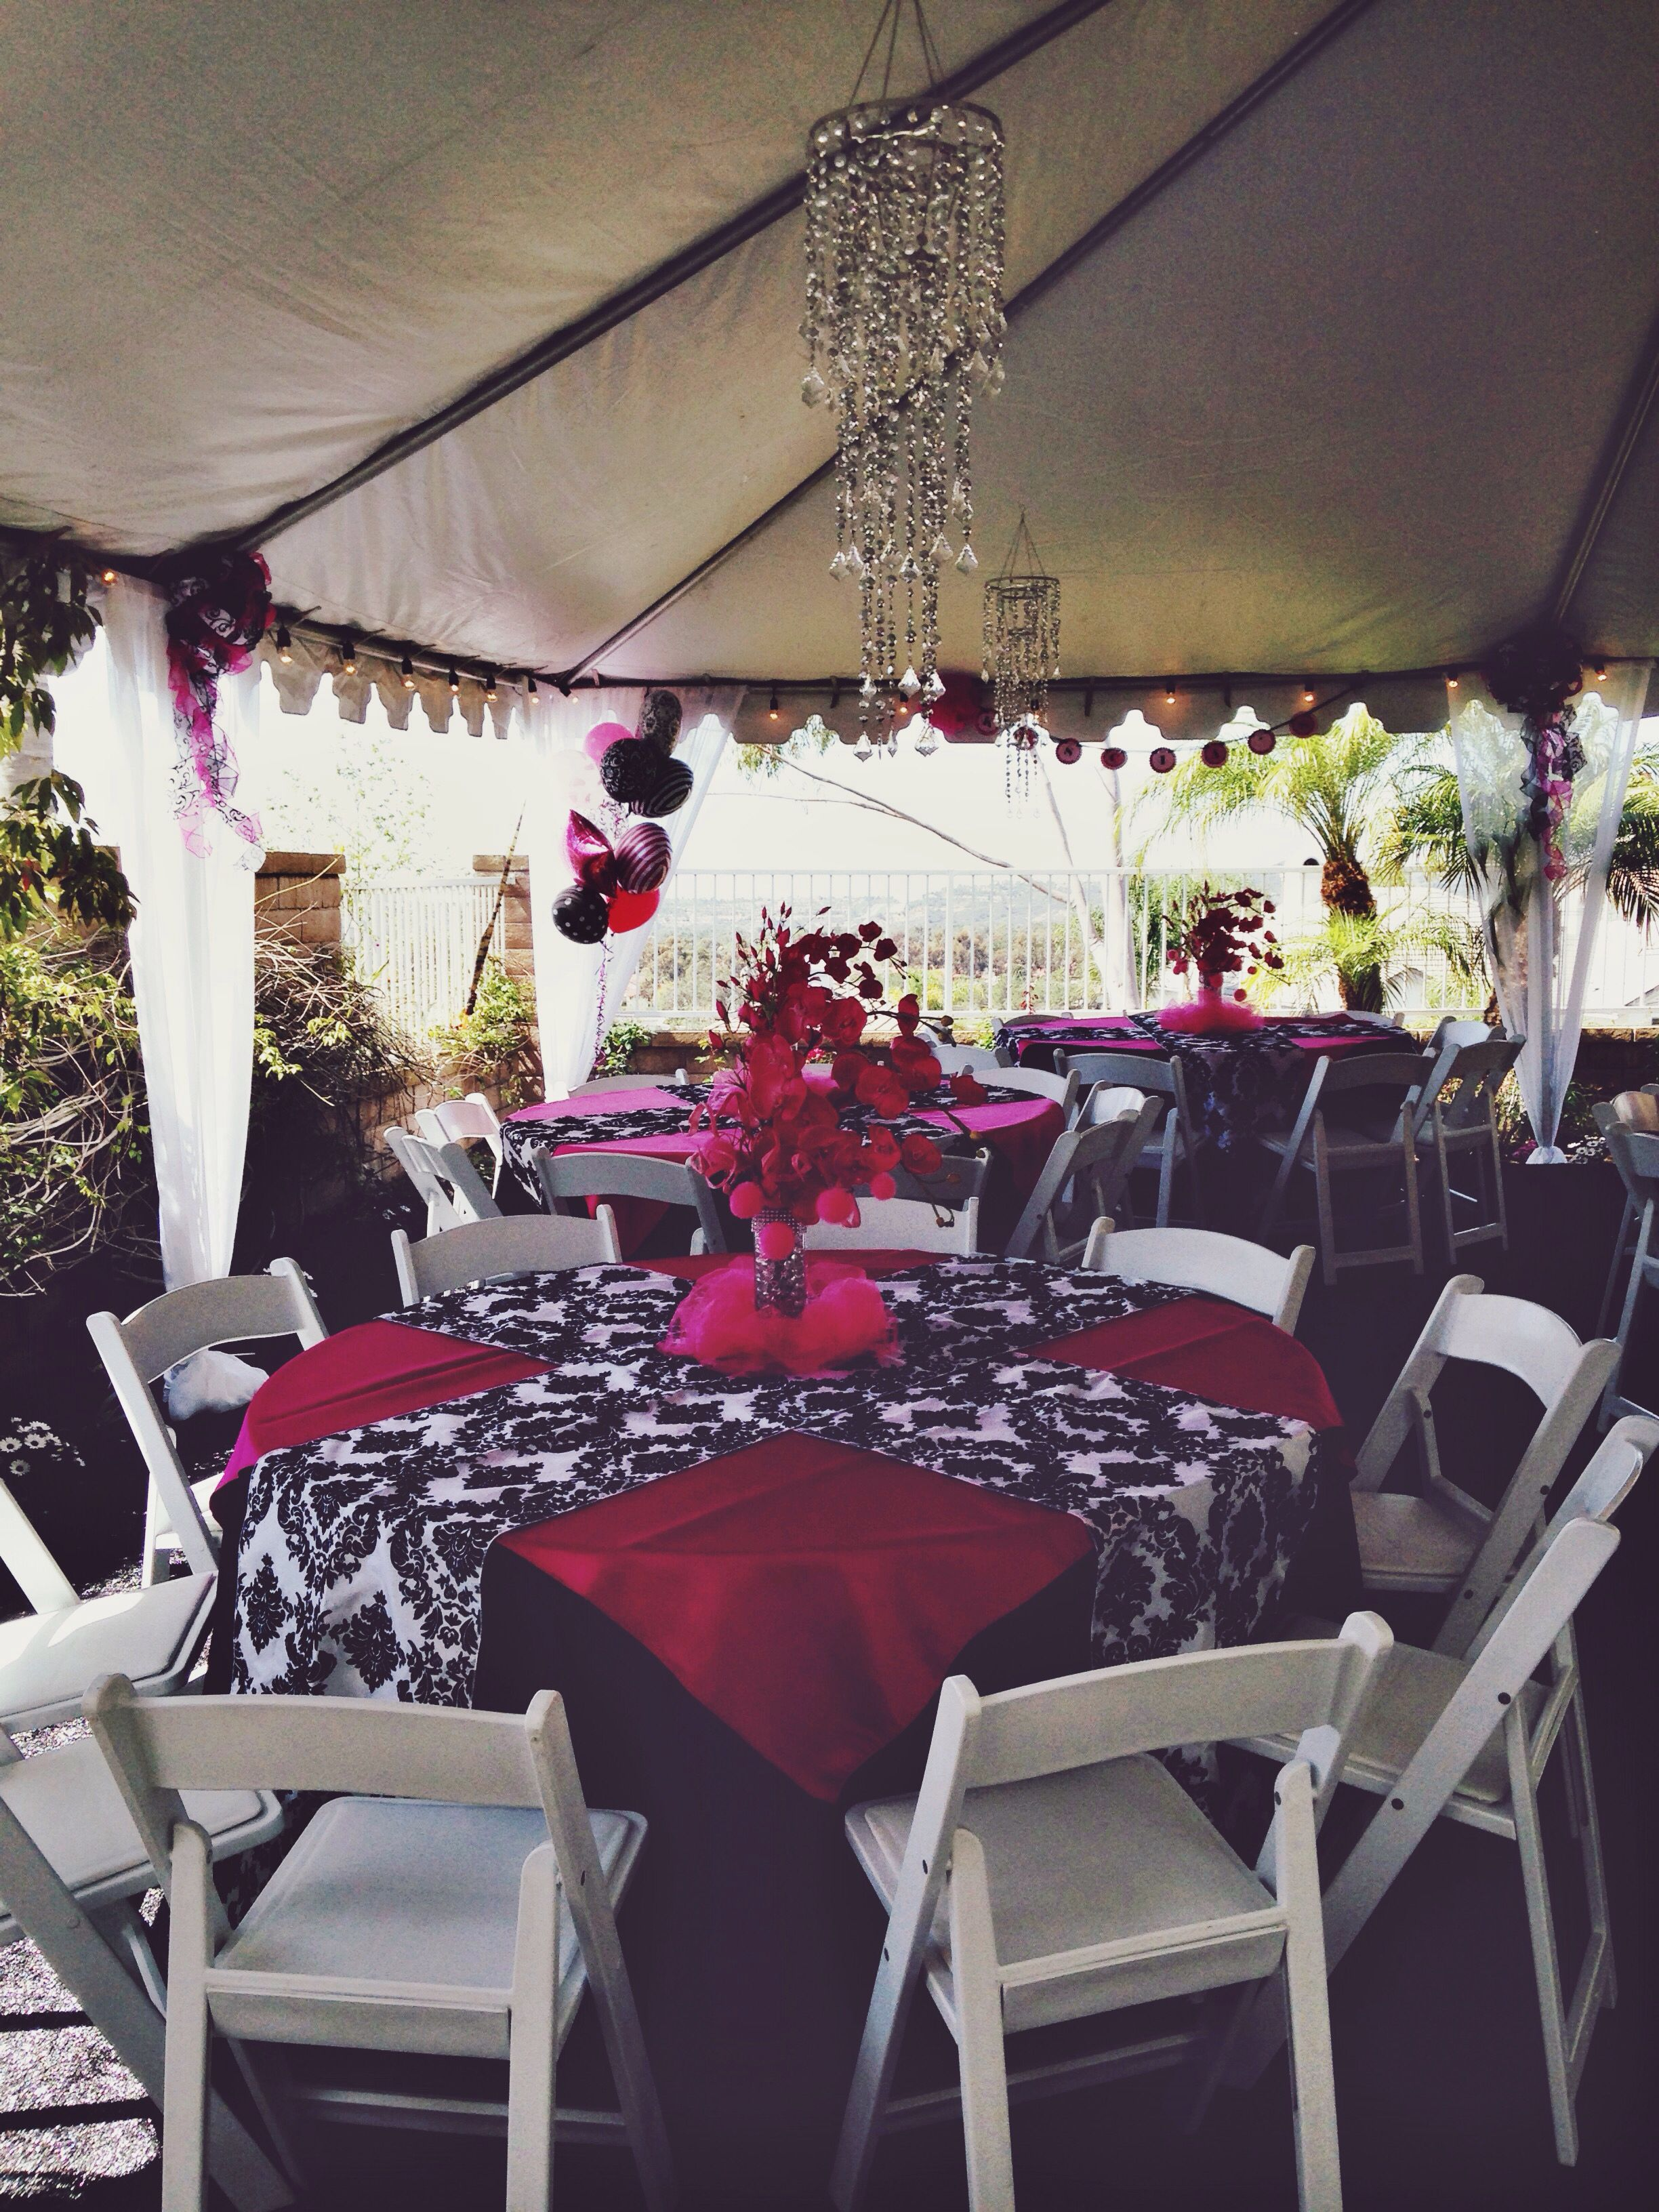 Baby Shower Backyard Event White Padded Folding Chairs